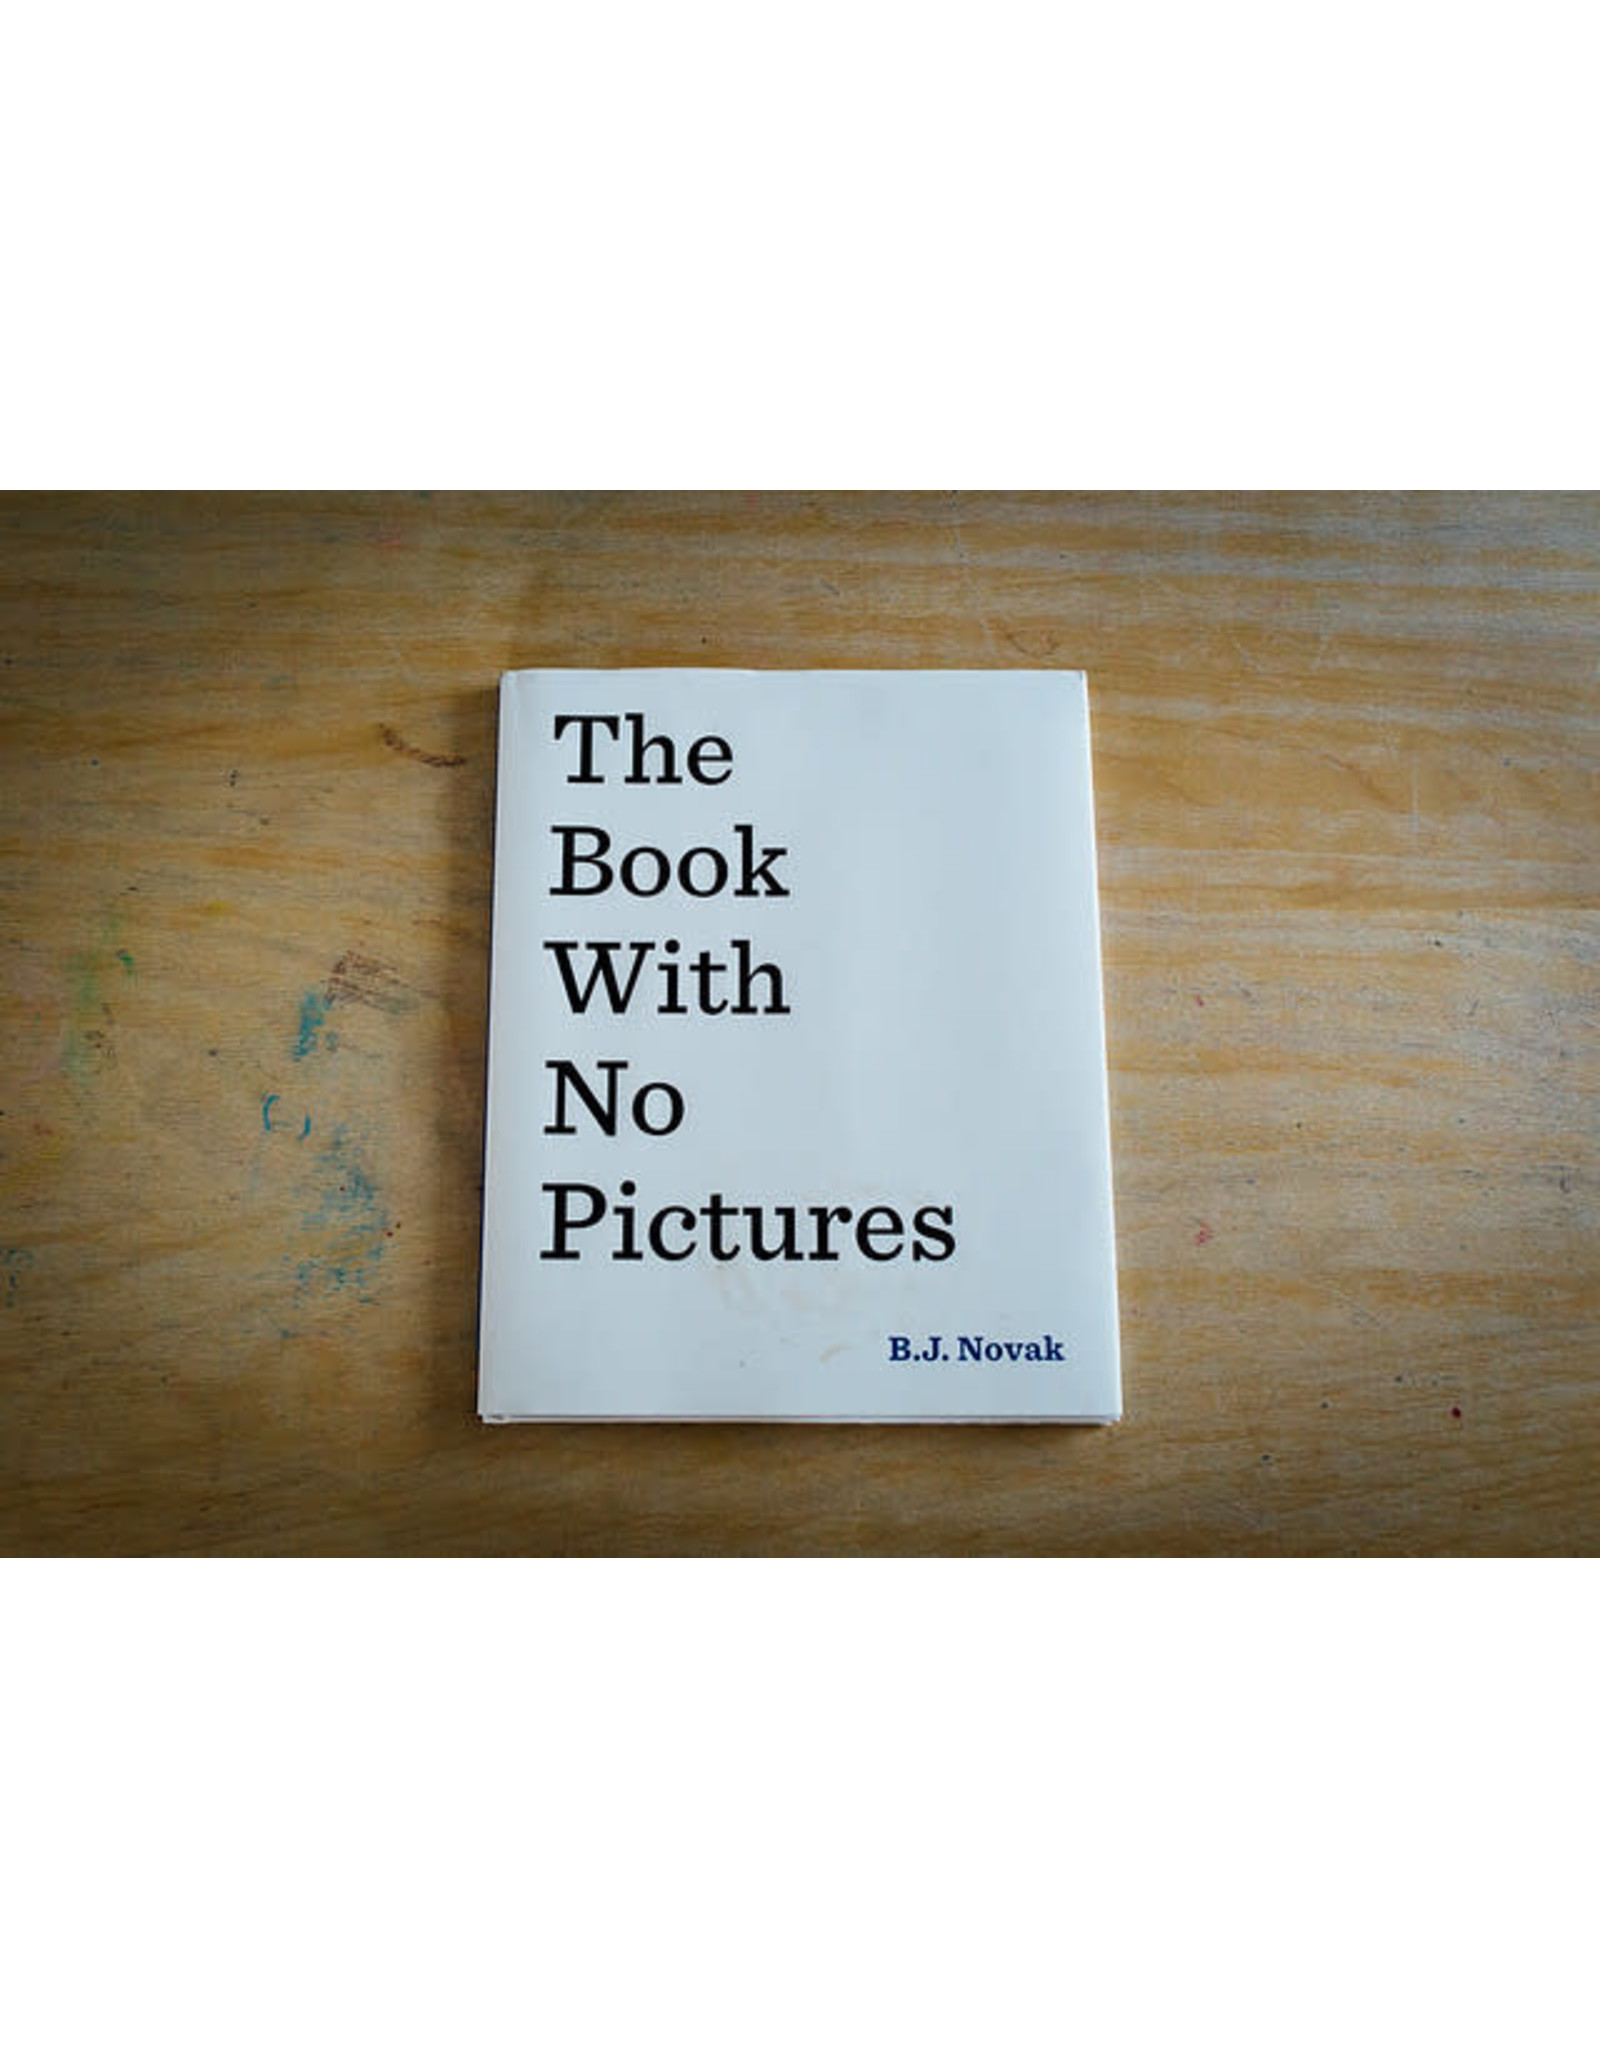 PENGUIN RANDOM HOUSE BOOK WITH NO PICTURE